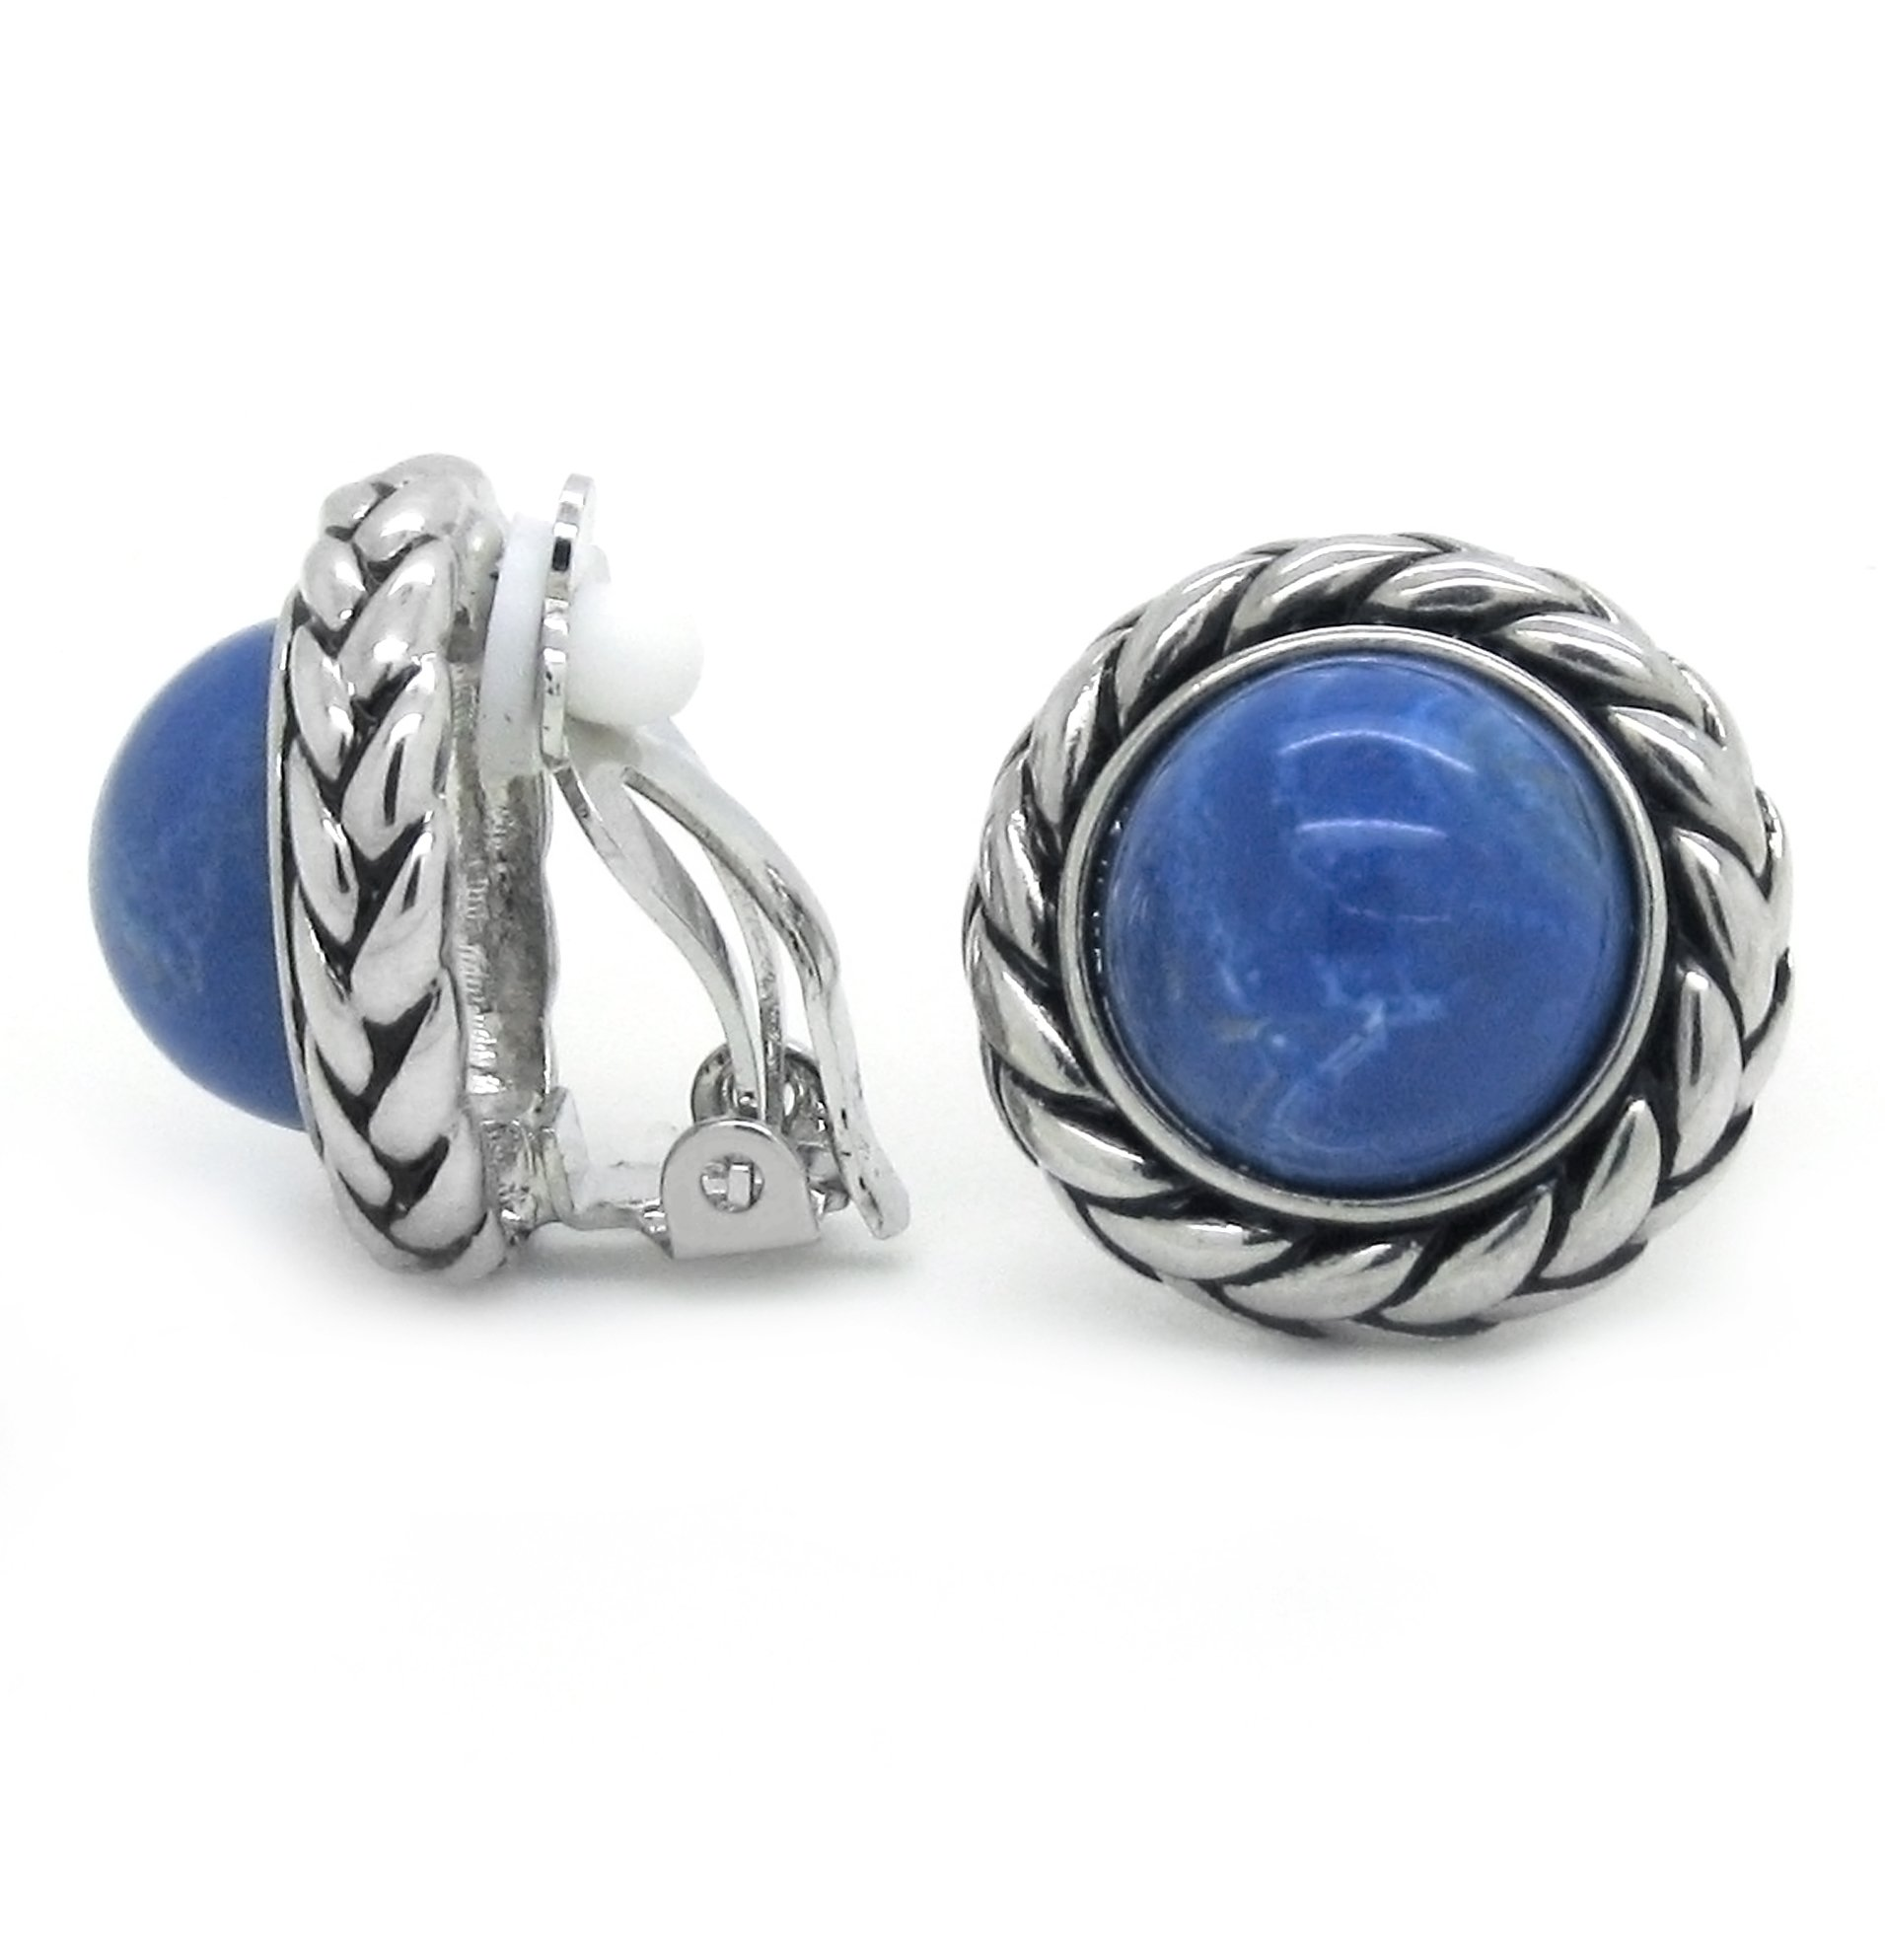 Blue Clip on Earrings Braided Rope Round Antique Women Fashion by Sparkly Bride